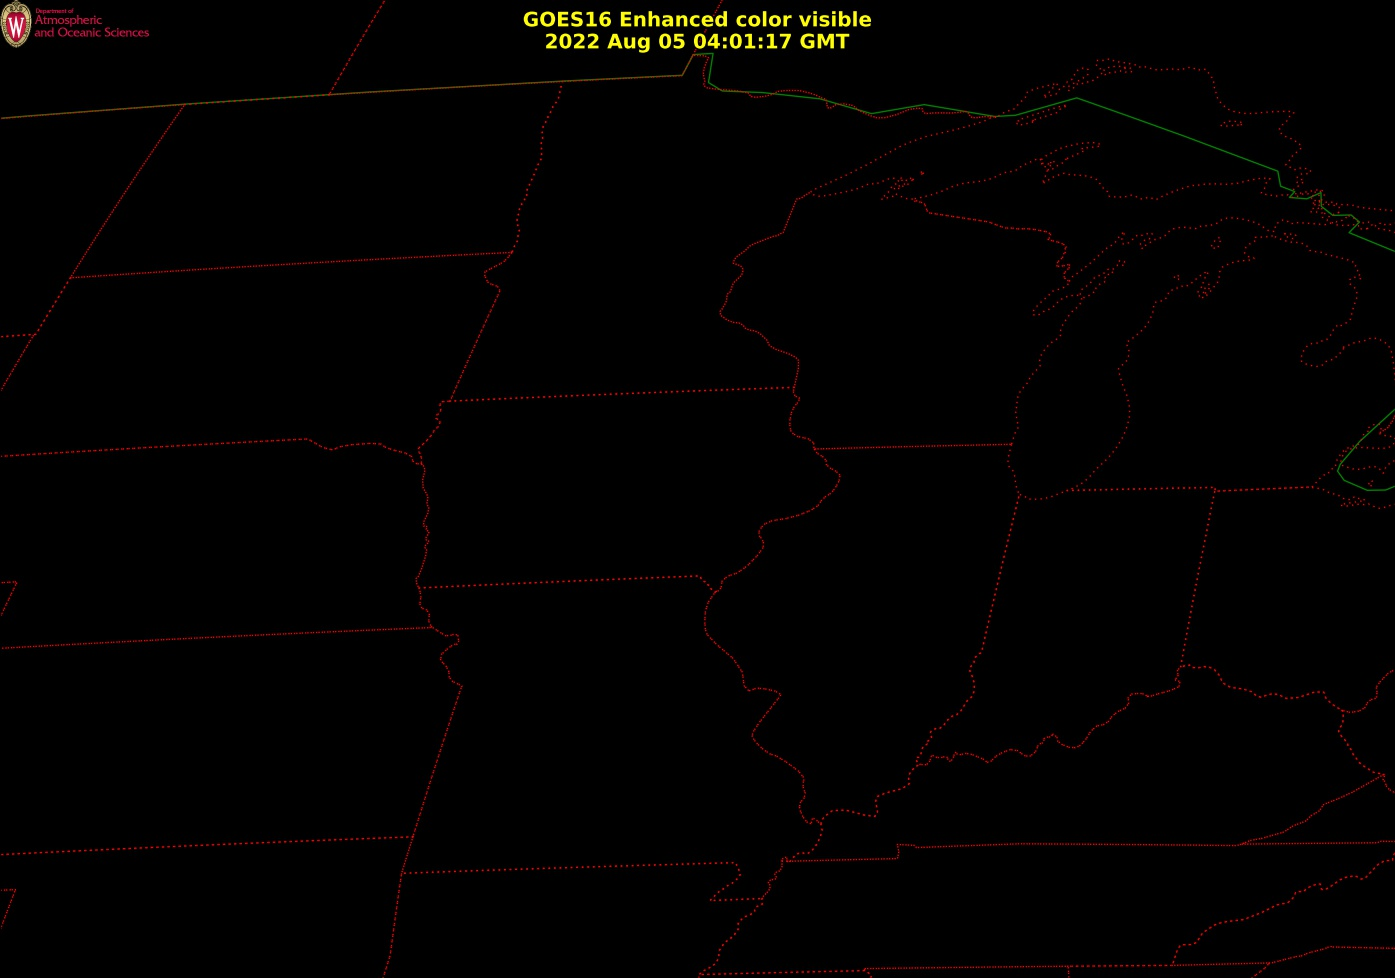 Visible Satellite - Midwest Current